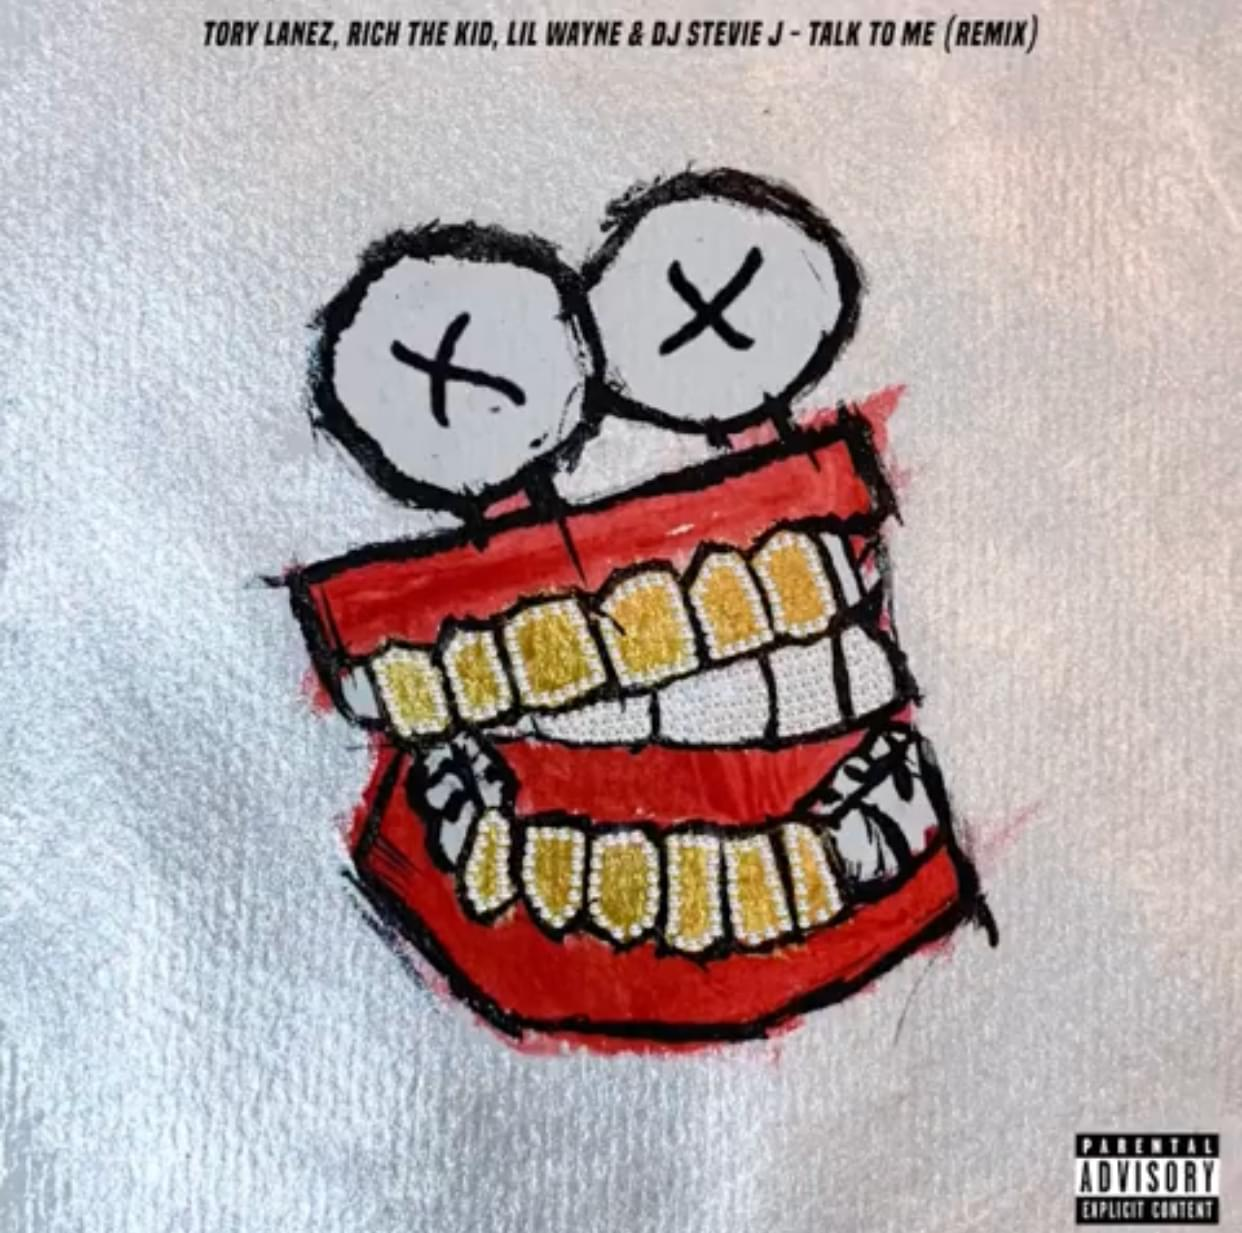 Tory Lanez Releases TAlk tO Me Remix Feat. Lil Wayne & Rich The Kid [LISTEN]